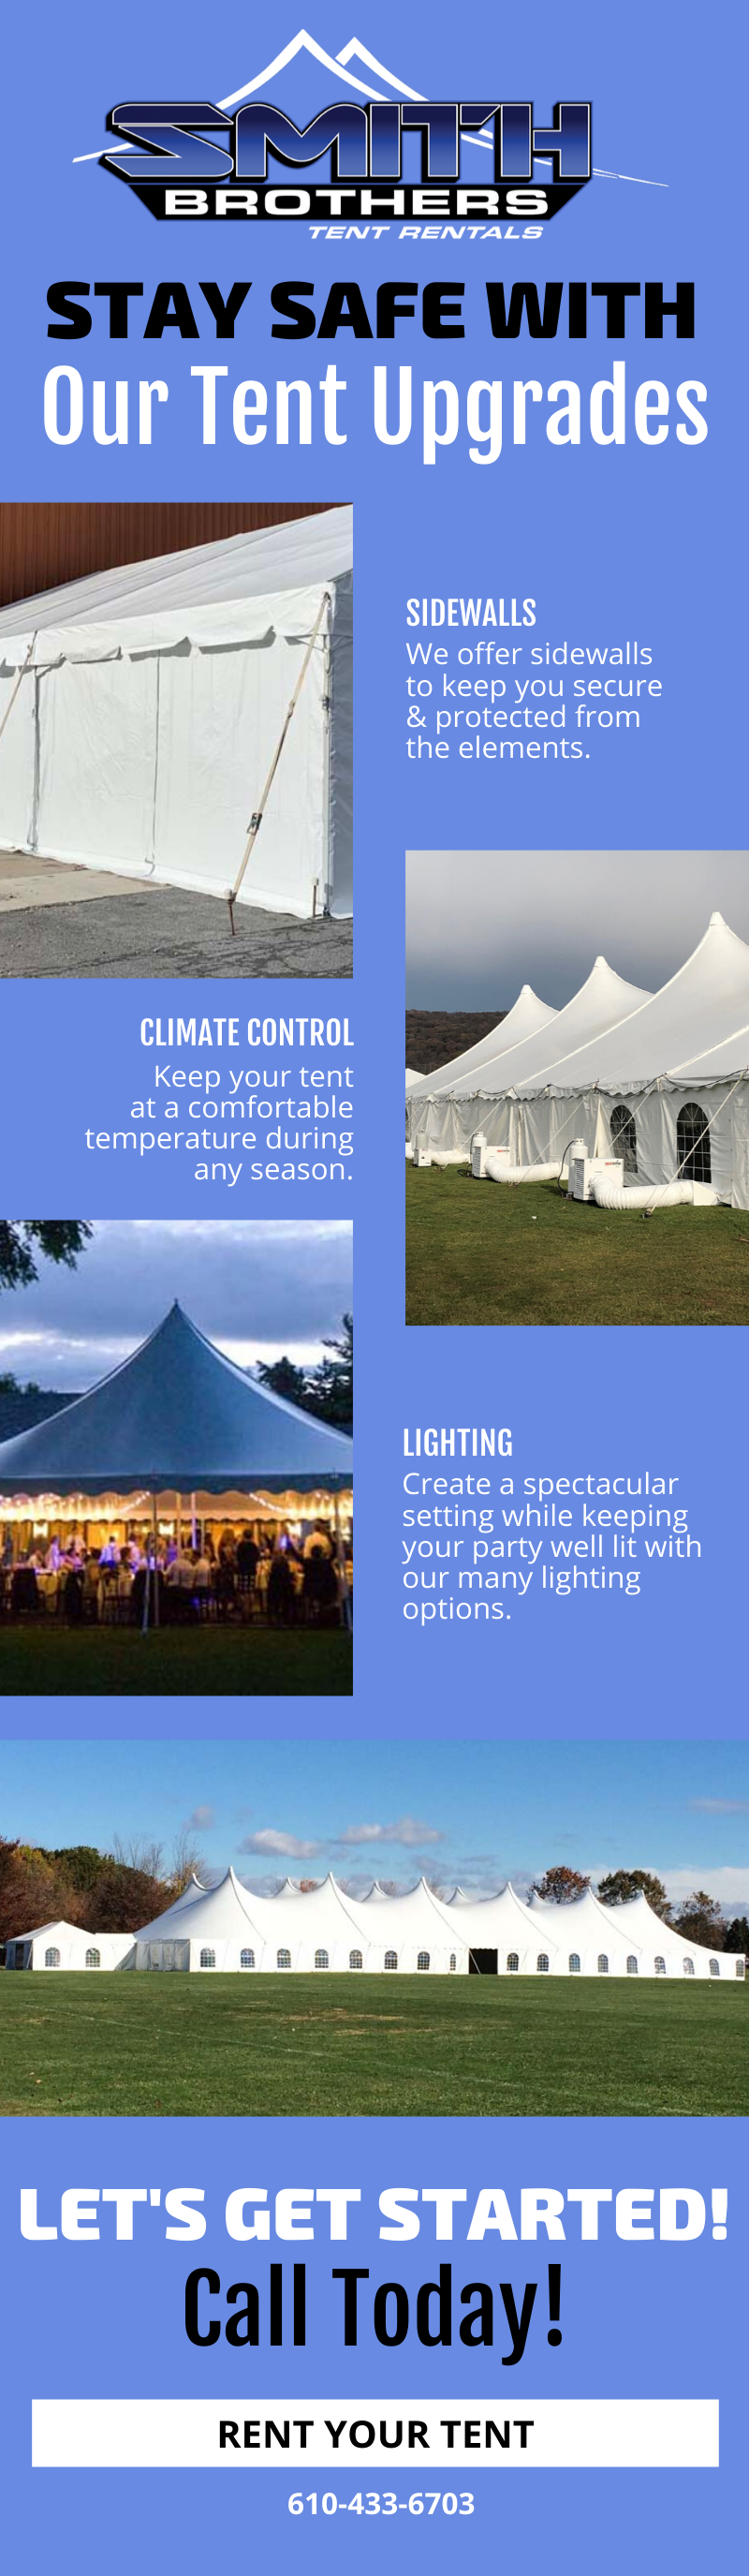 Stay Safe With Our Tent Upgrades 1